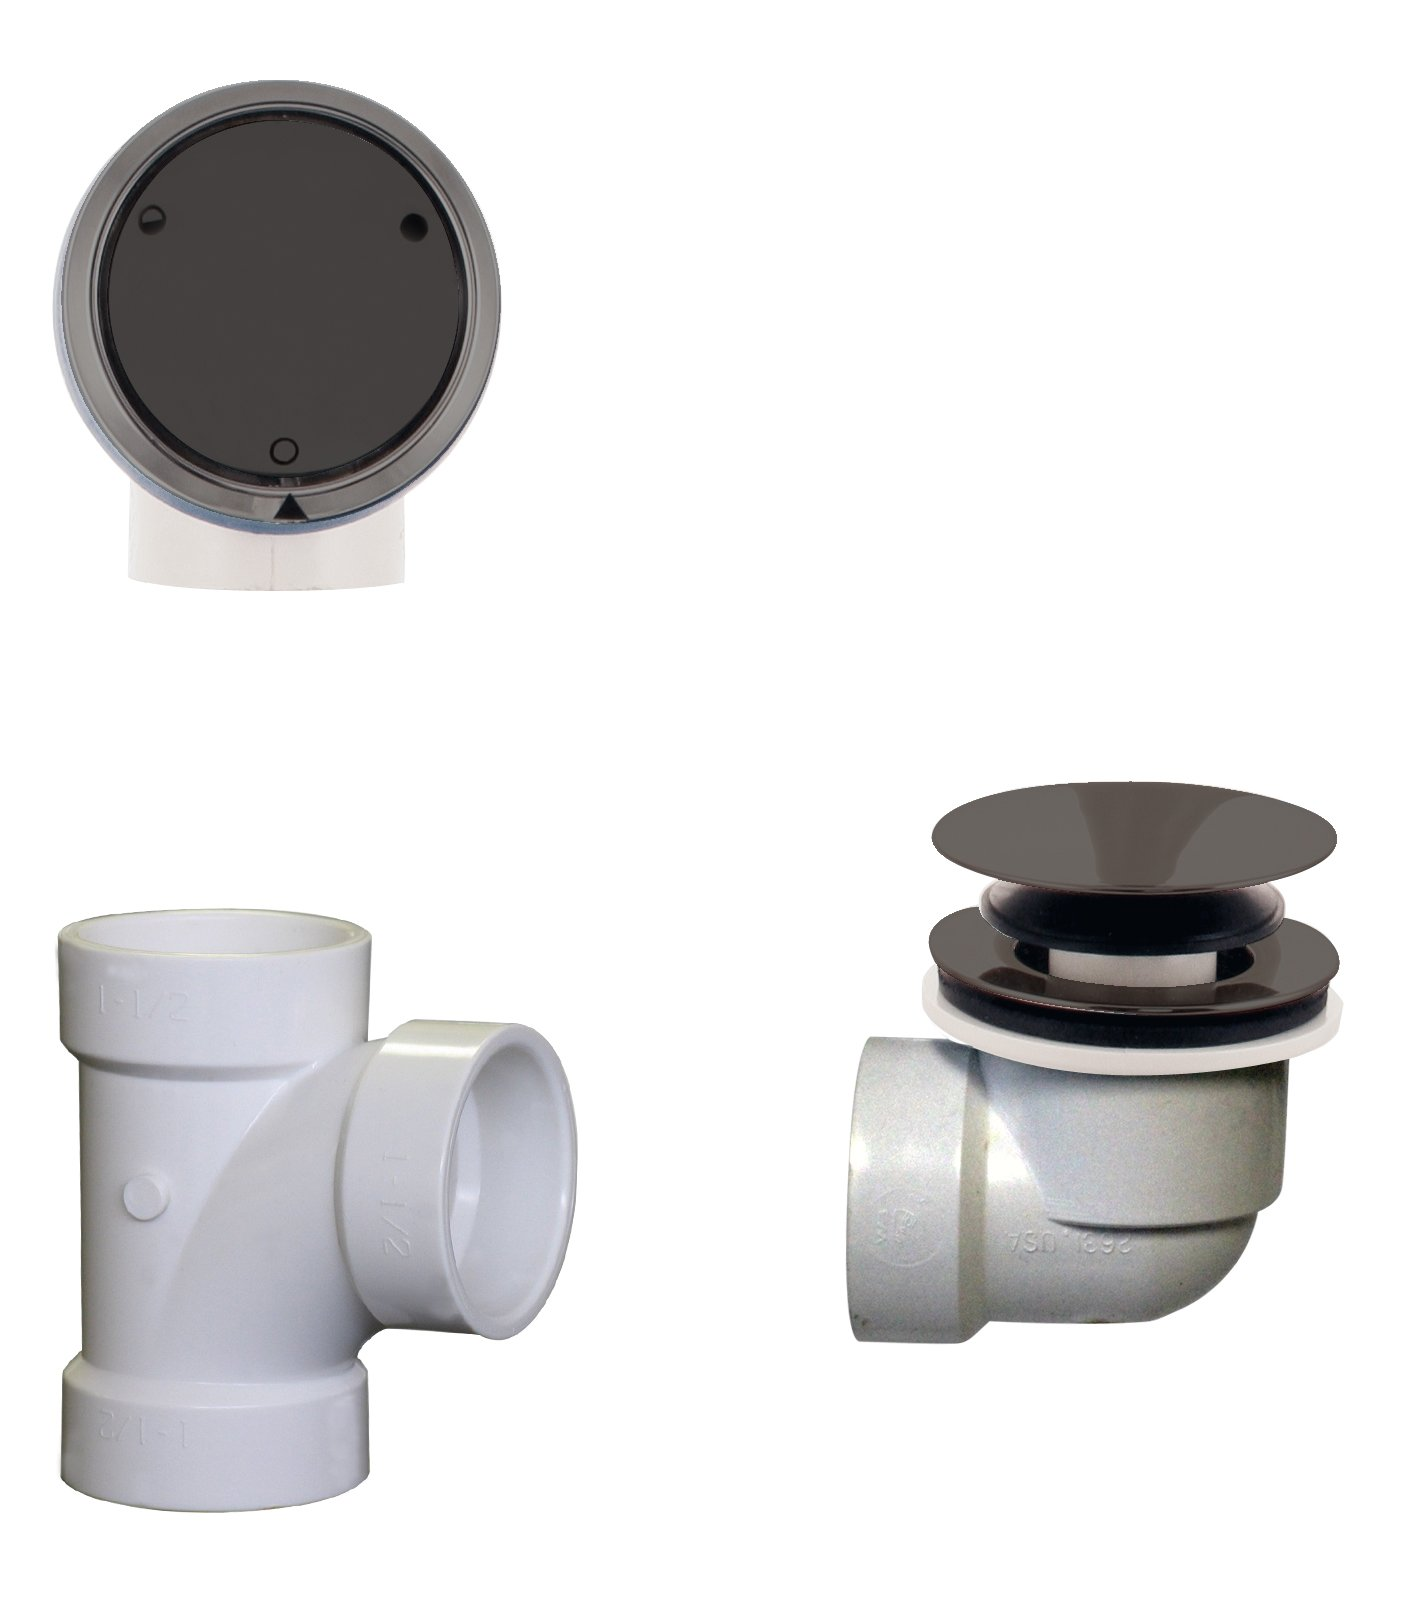 Westbrass Deep Soak Closing Overflow Plumber's Pack with Sch. 40 PVC Elbows and Tee, with an ADA aprroved Tip-Toe Drain, Oil Rubbed Bronze, D593CHPM-12